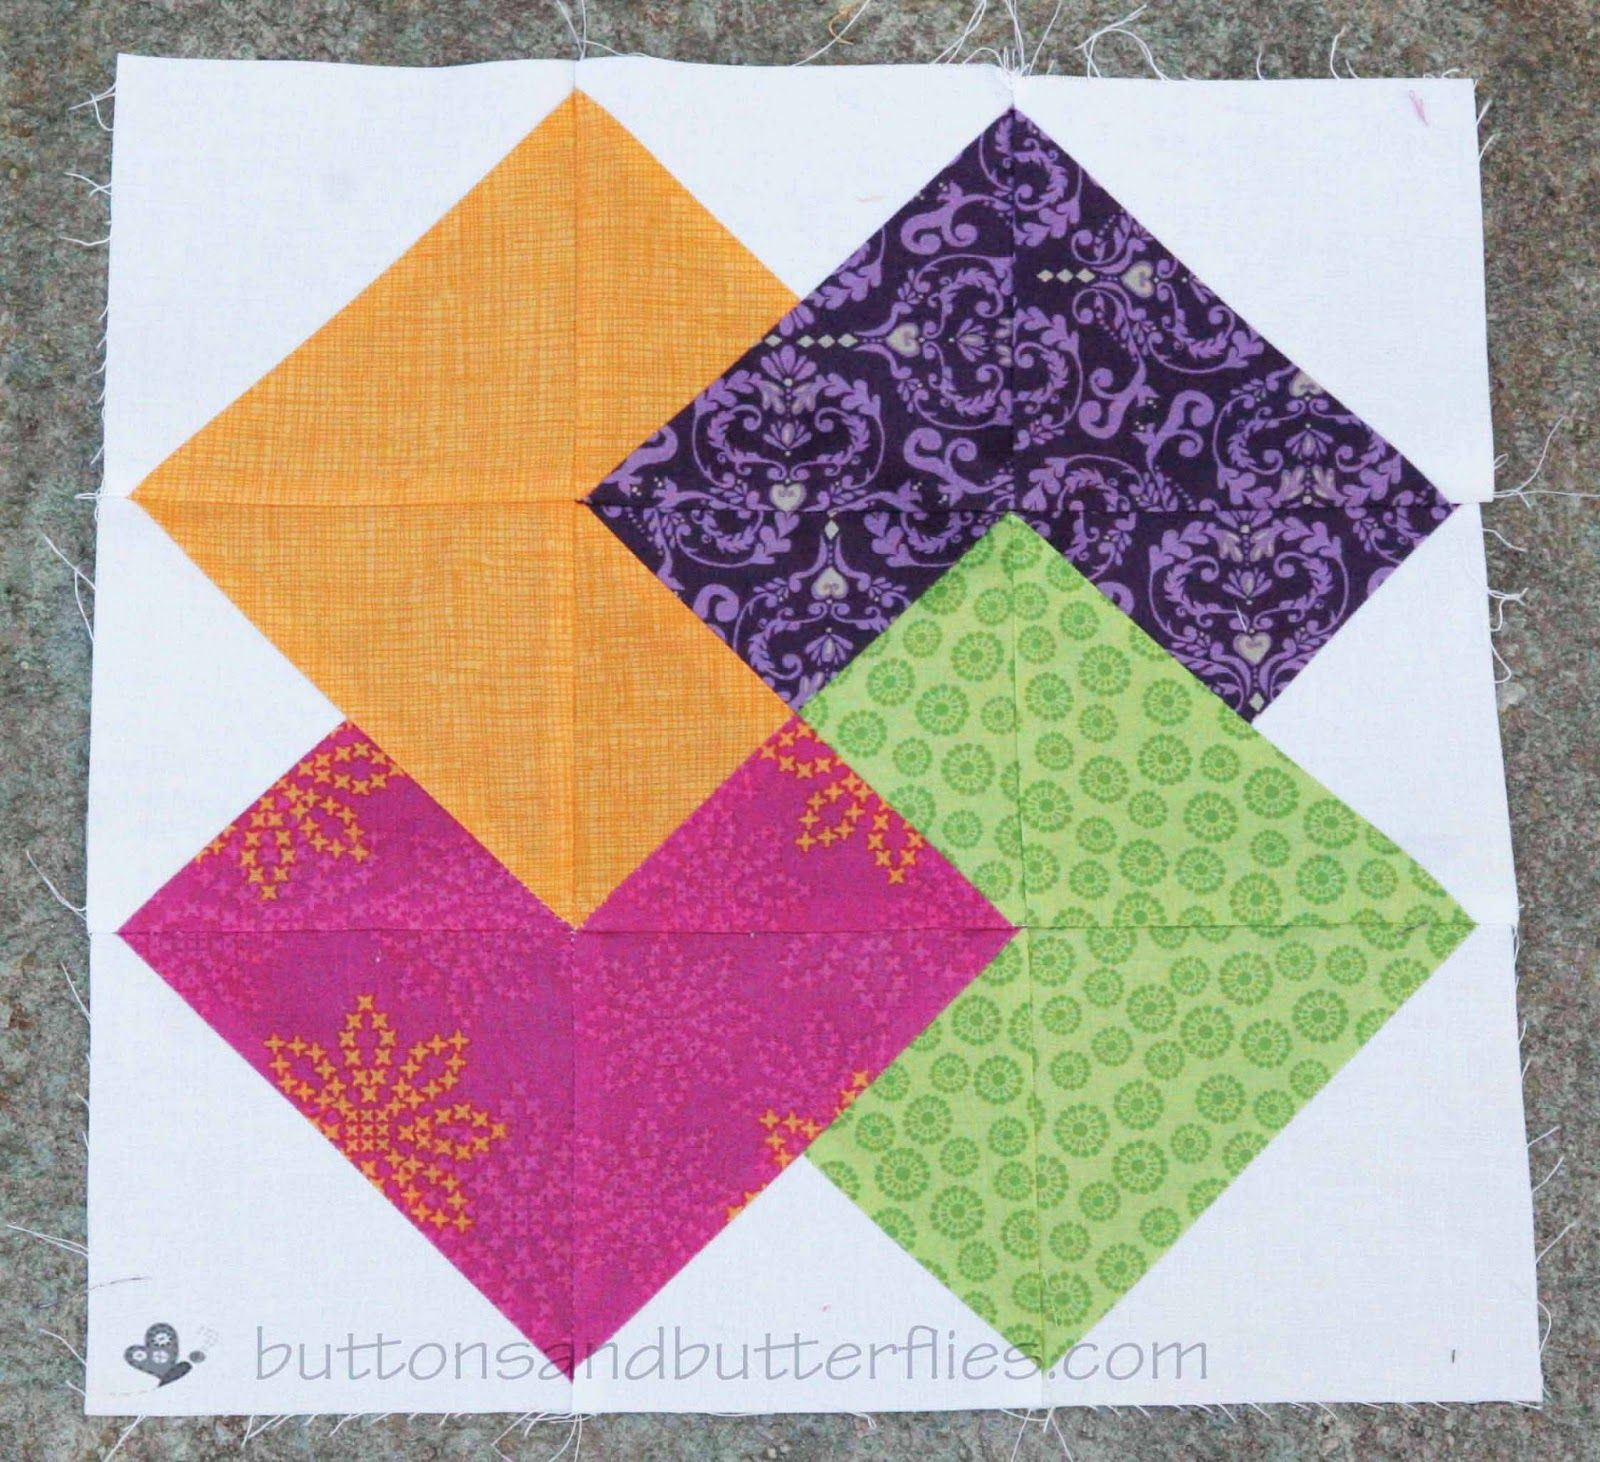 Buttons And Butterflies Card Trick Block Tutorial Quilt Blocks Easy Quilt Block Patterns Free Quilt Block Patterns